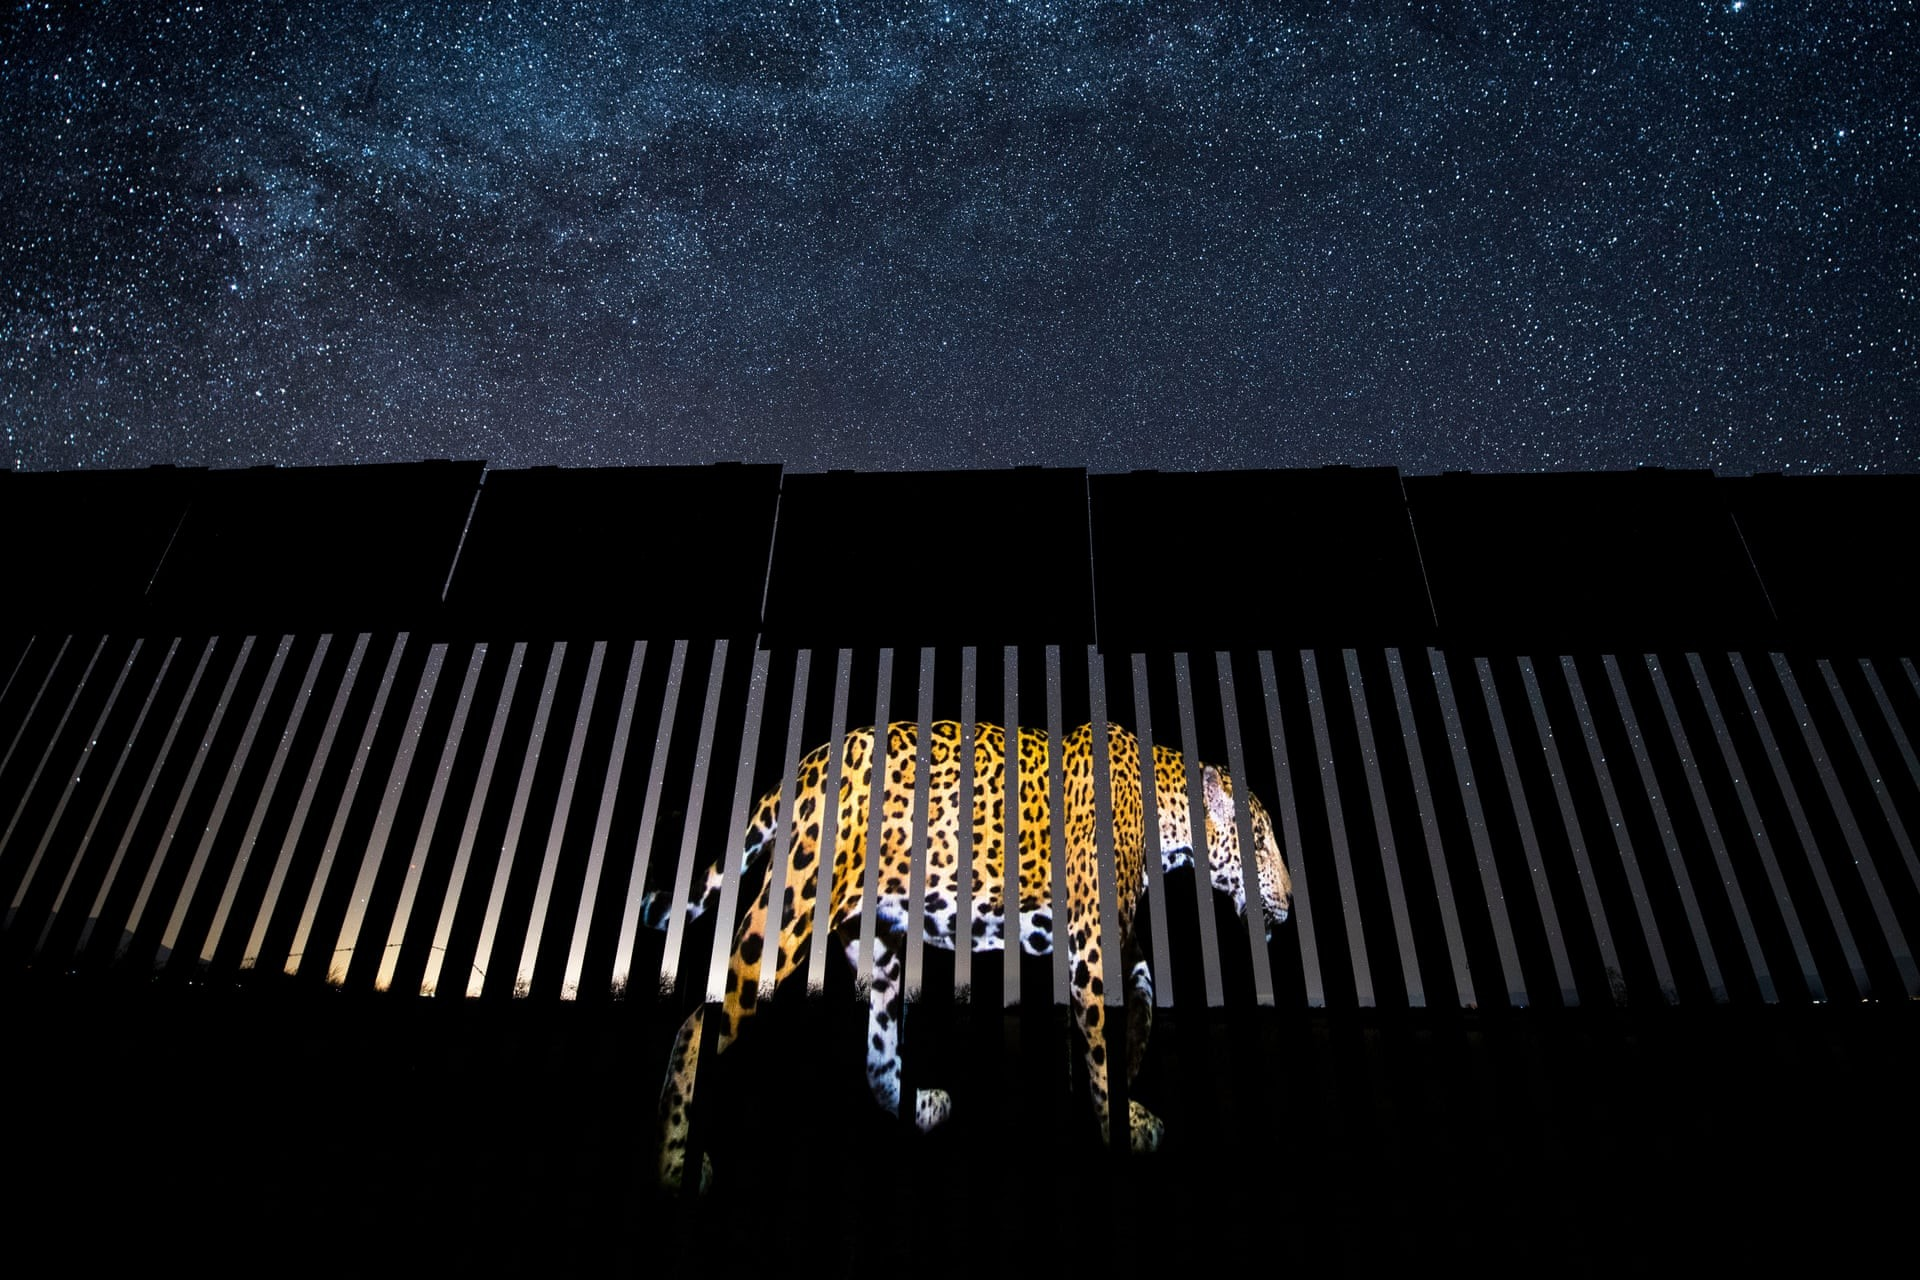 Another Barred Migrant (Foto: Alejandro Prieto/2019 Wildlife Photographer of the Year)